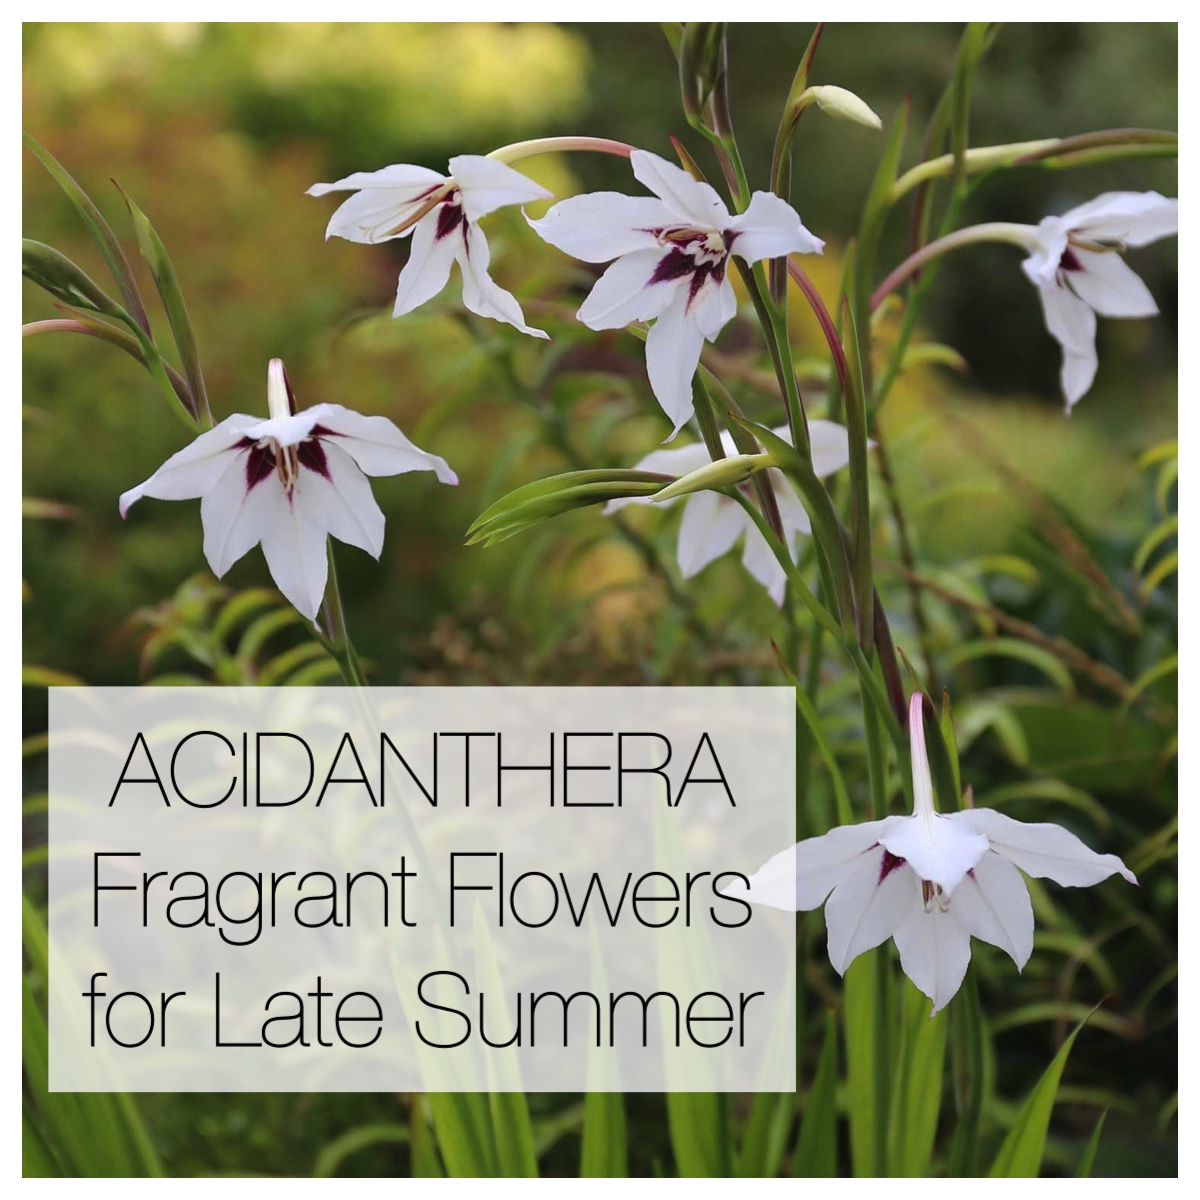 Acidanthera: Fragrant Flowers for Late Summer